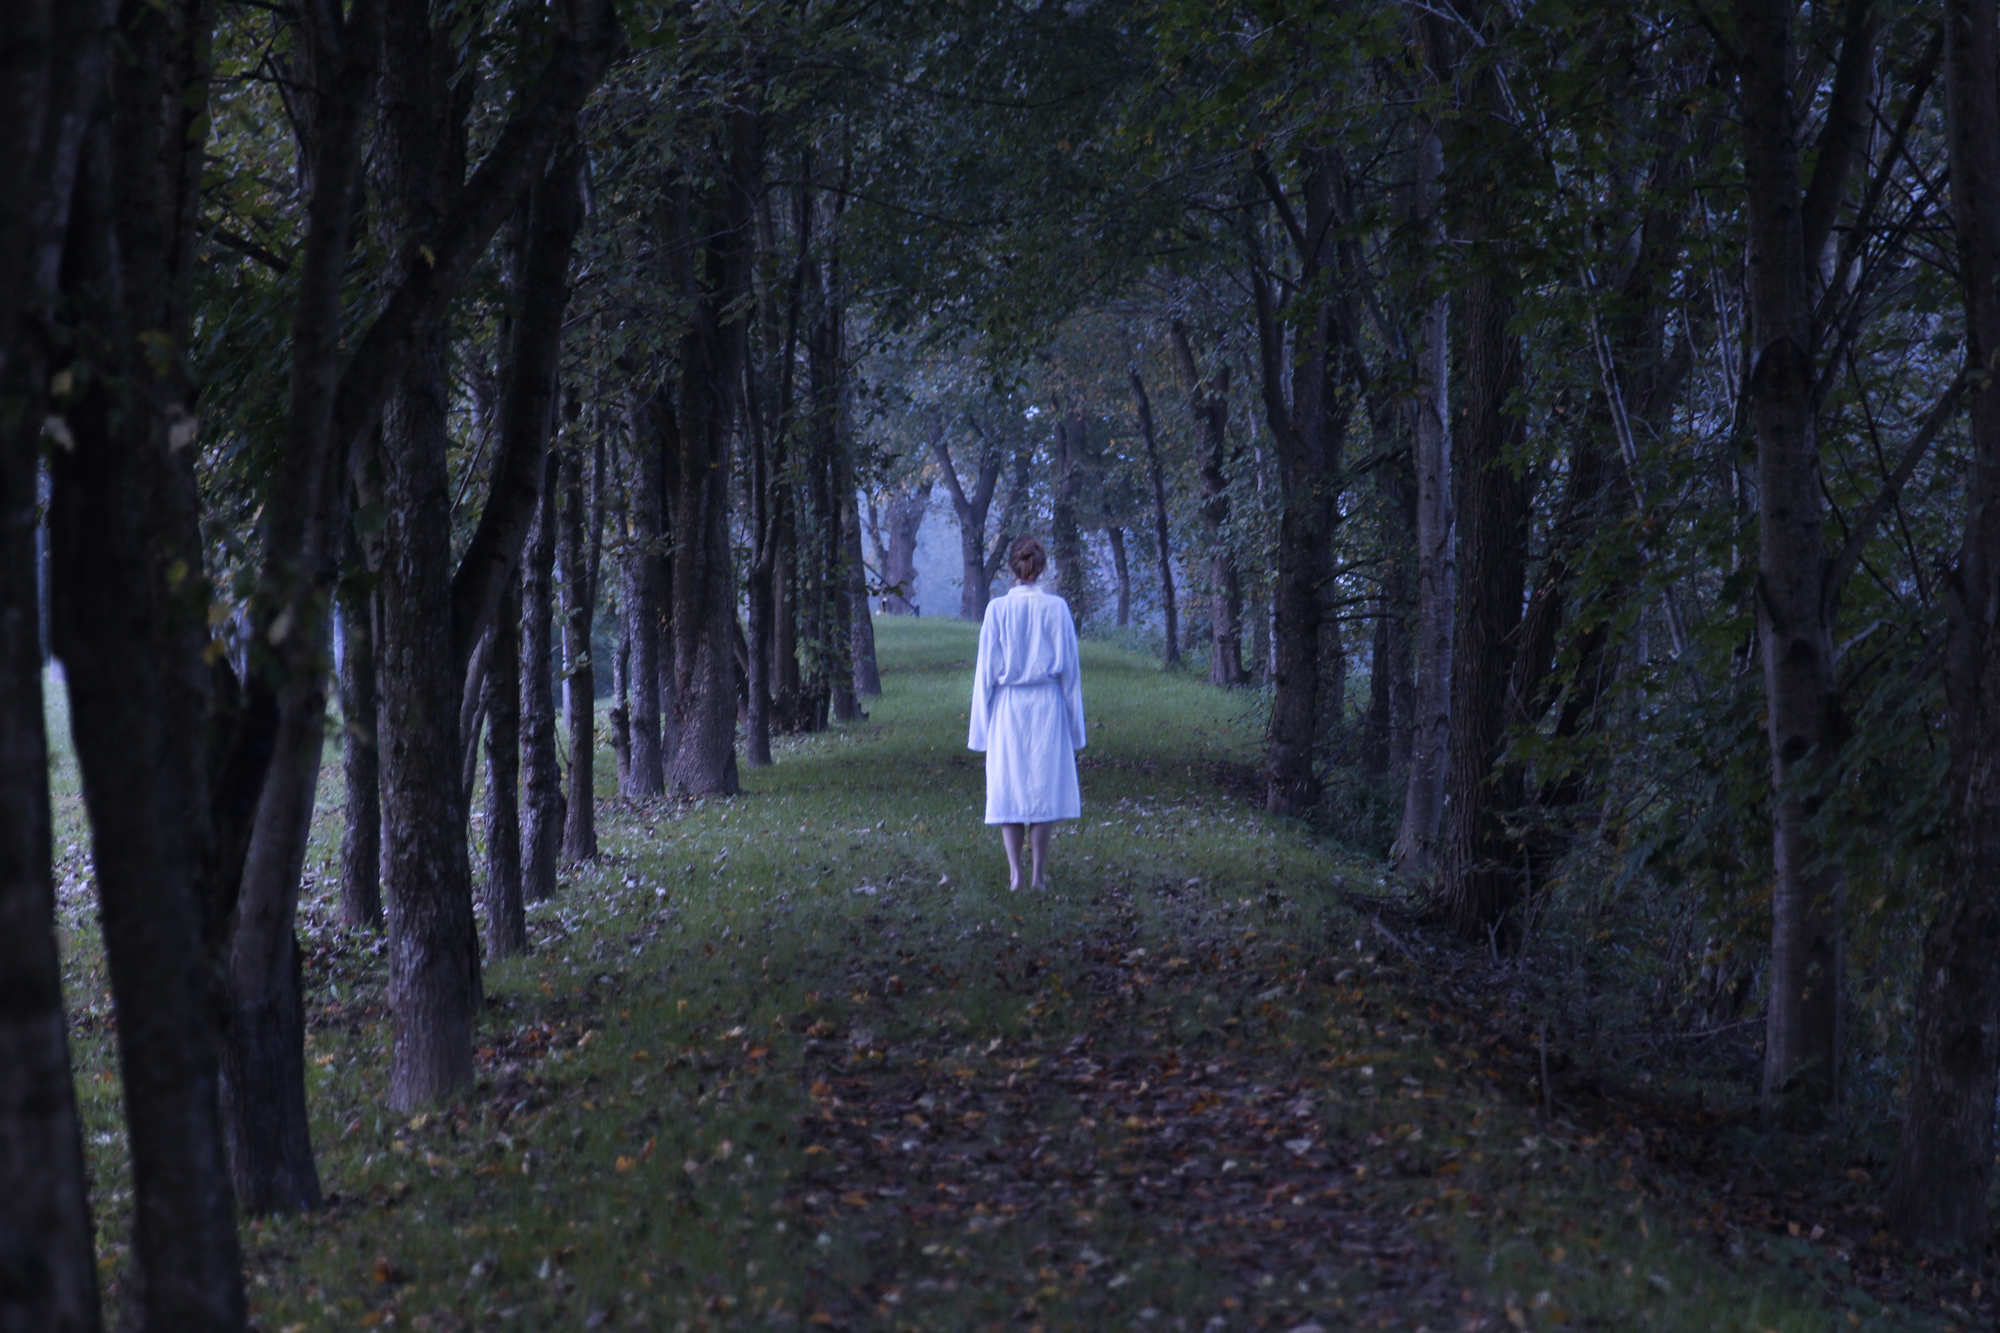 Woman walking through dark trees